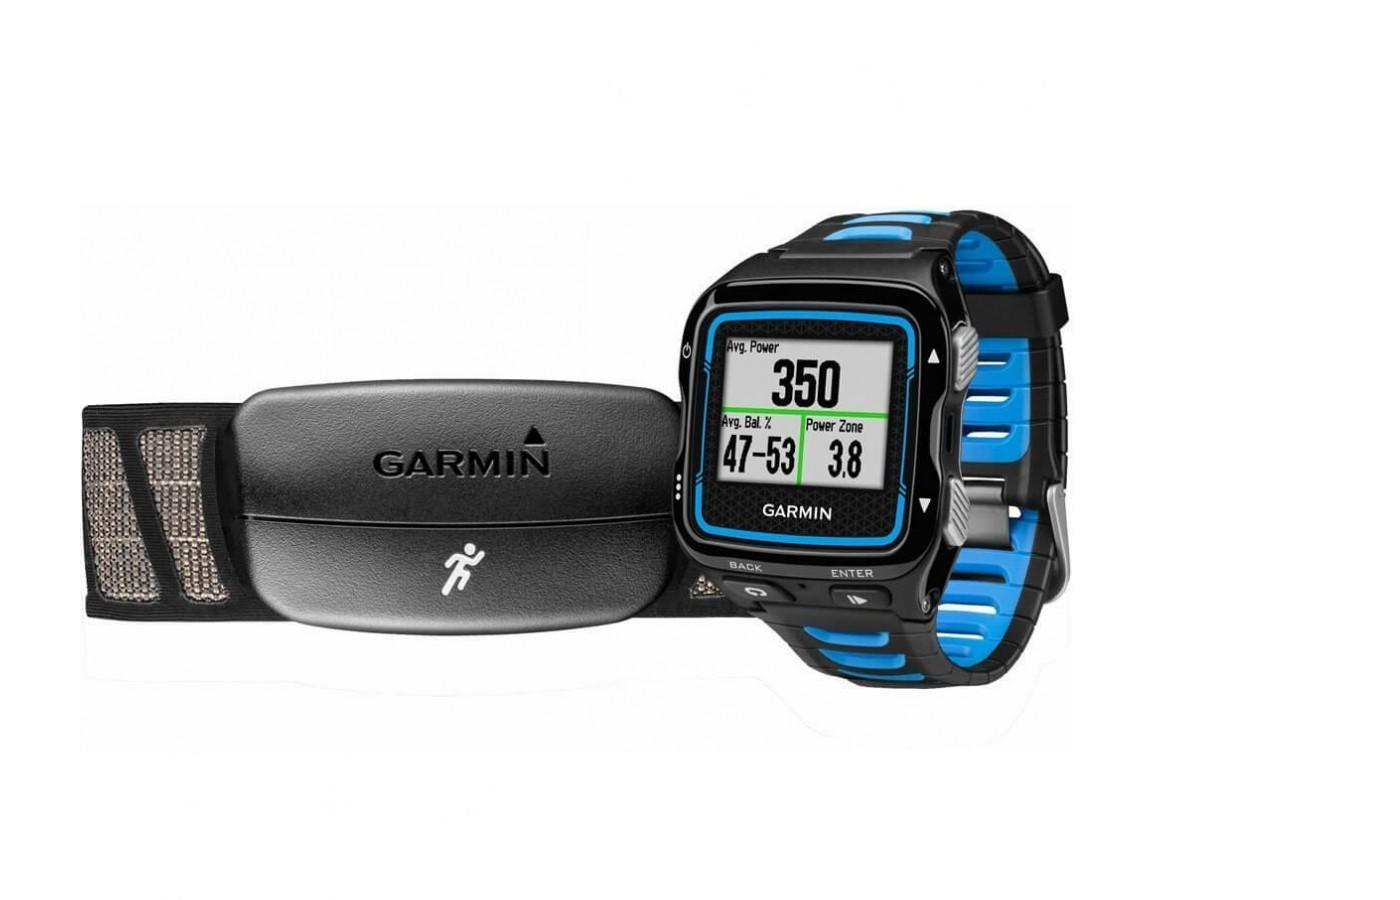 Garmin Forerunner 920 XT has a sleek look